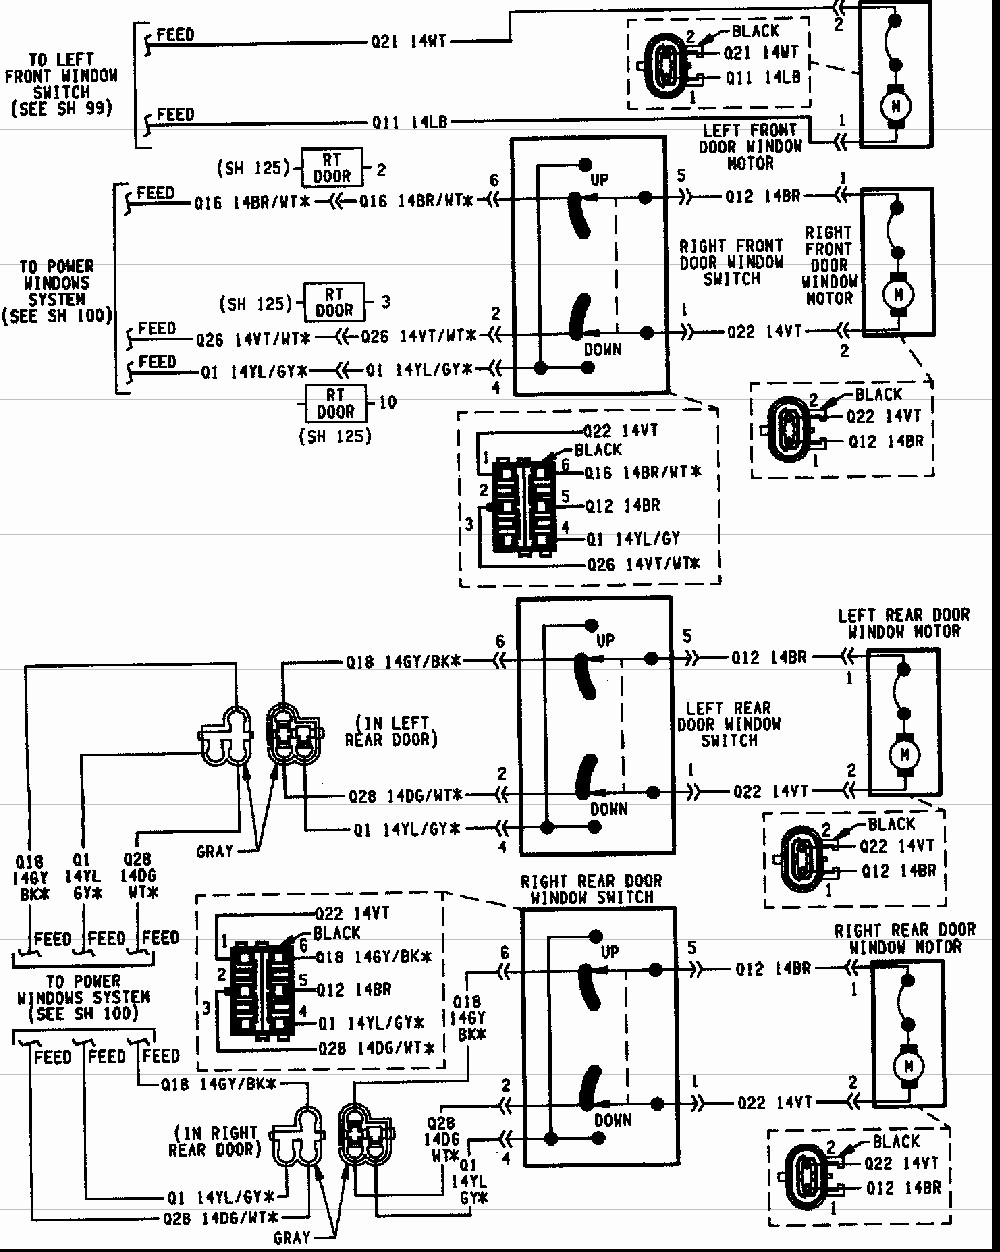 99 Jeep Cherokee Wiring Harness Auto Diagrams Instructions Jeep Xj Wiring  Auto Diagrams Instructions 2002 2004 Grand ...